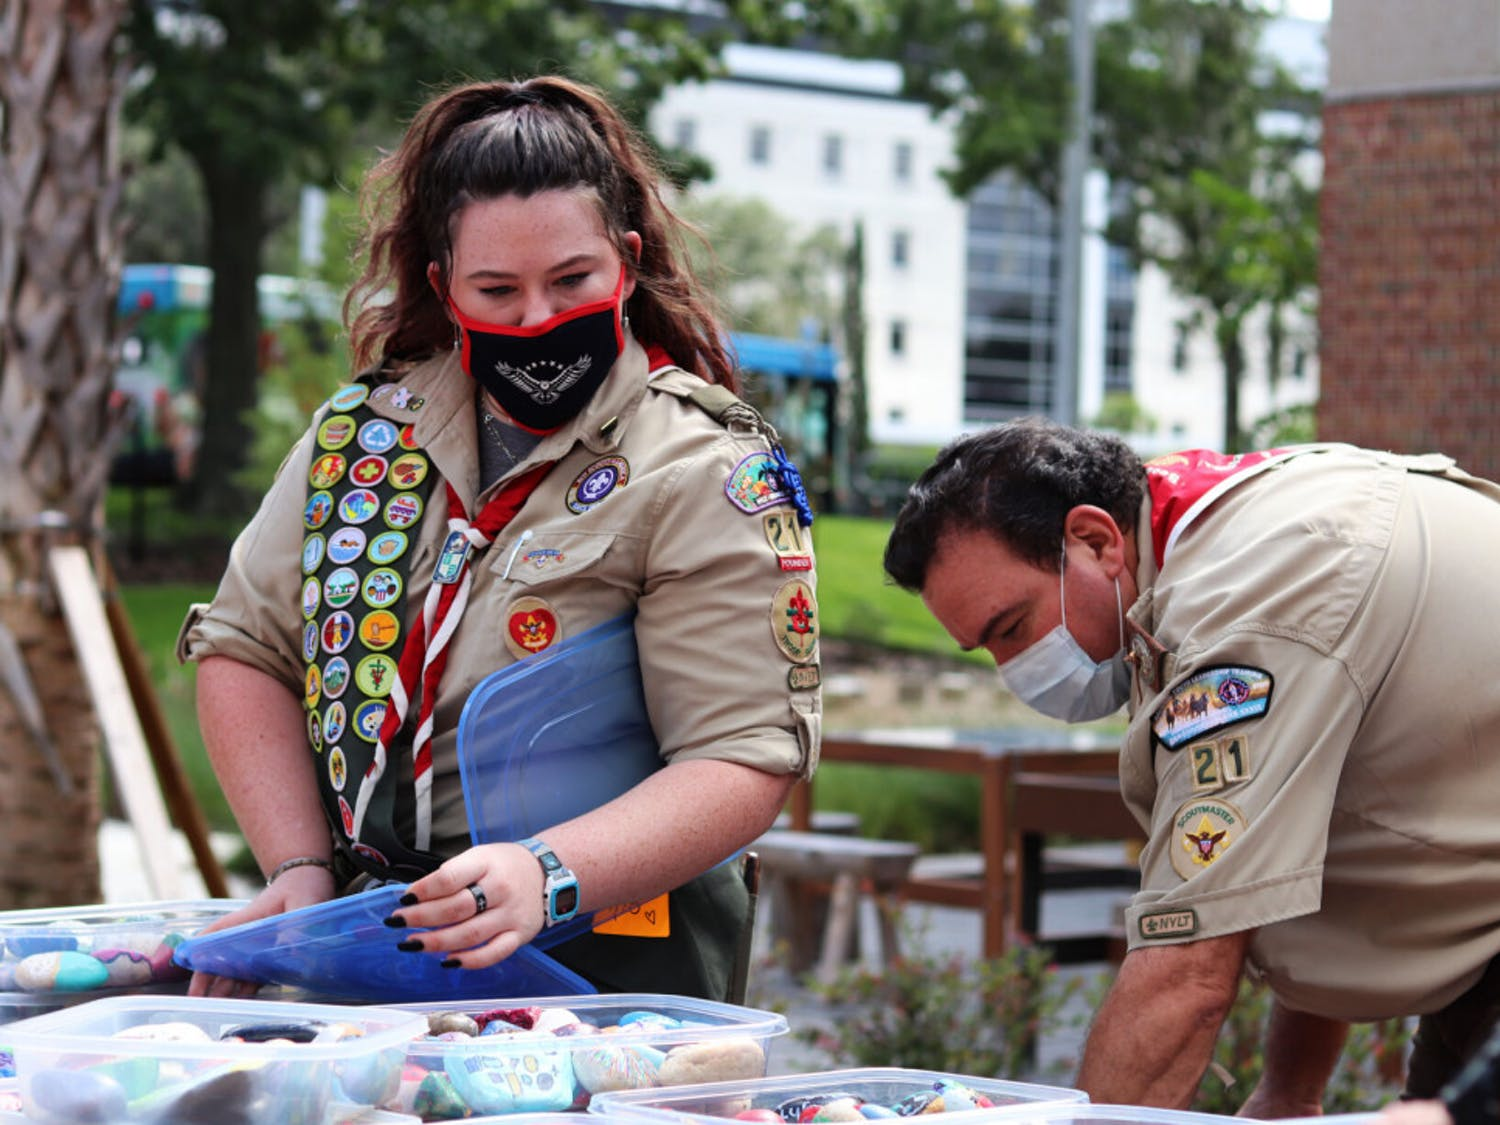 Olivia Foli, 16, an eagle scout who helped start Gainesville's first female troop, and her dad, Randy Foli, take some of the 676 painted healing stones out of its containers at the UF Health Children's Healing Garden on Friday, Sept. 18, 2020.